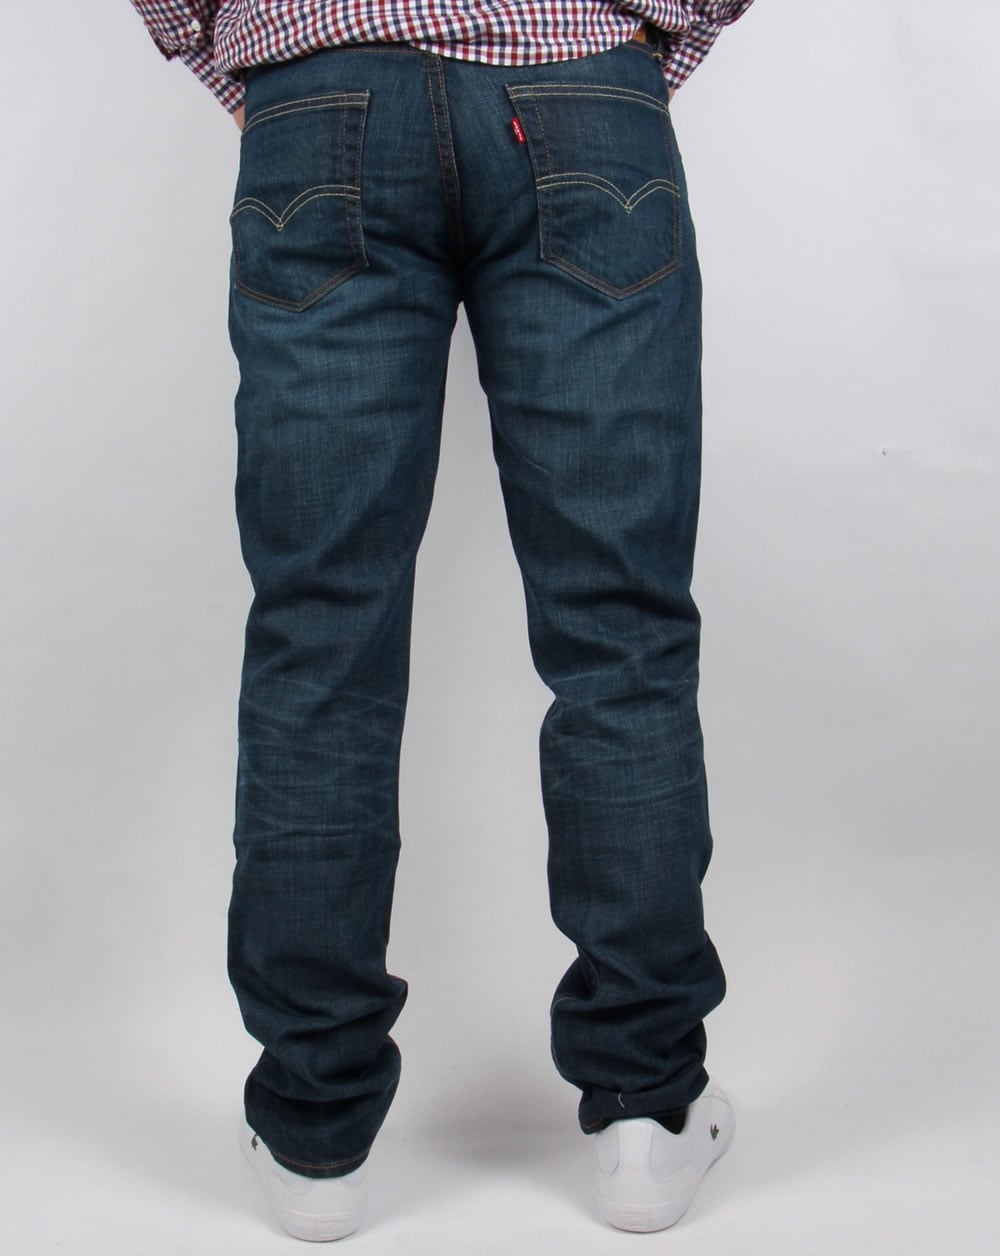 Jeans Levis Levis 511 Slim Fit Jeans Explorer,denim,mens